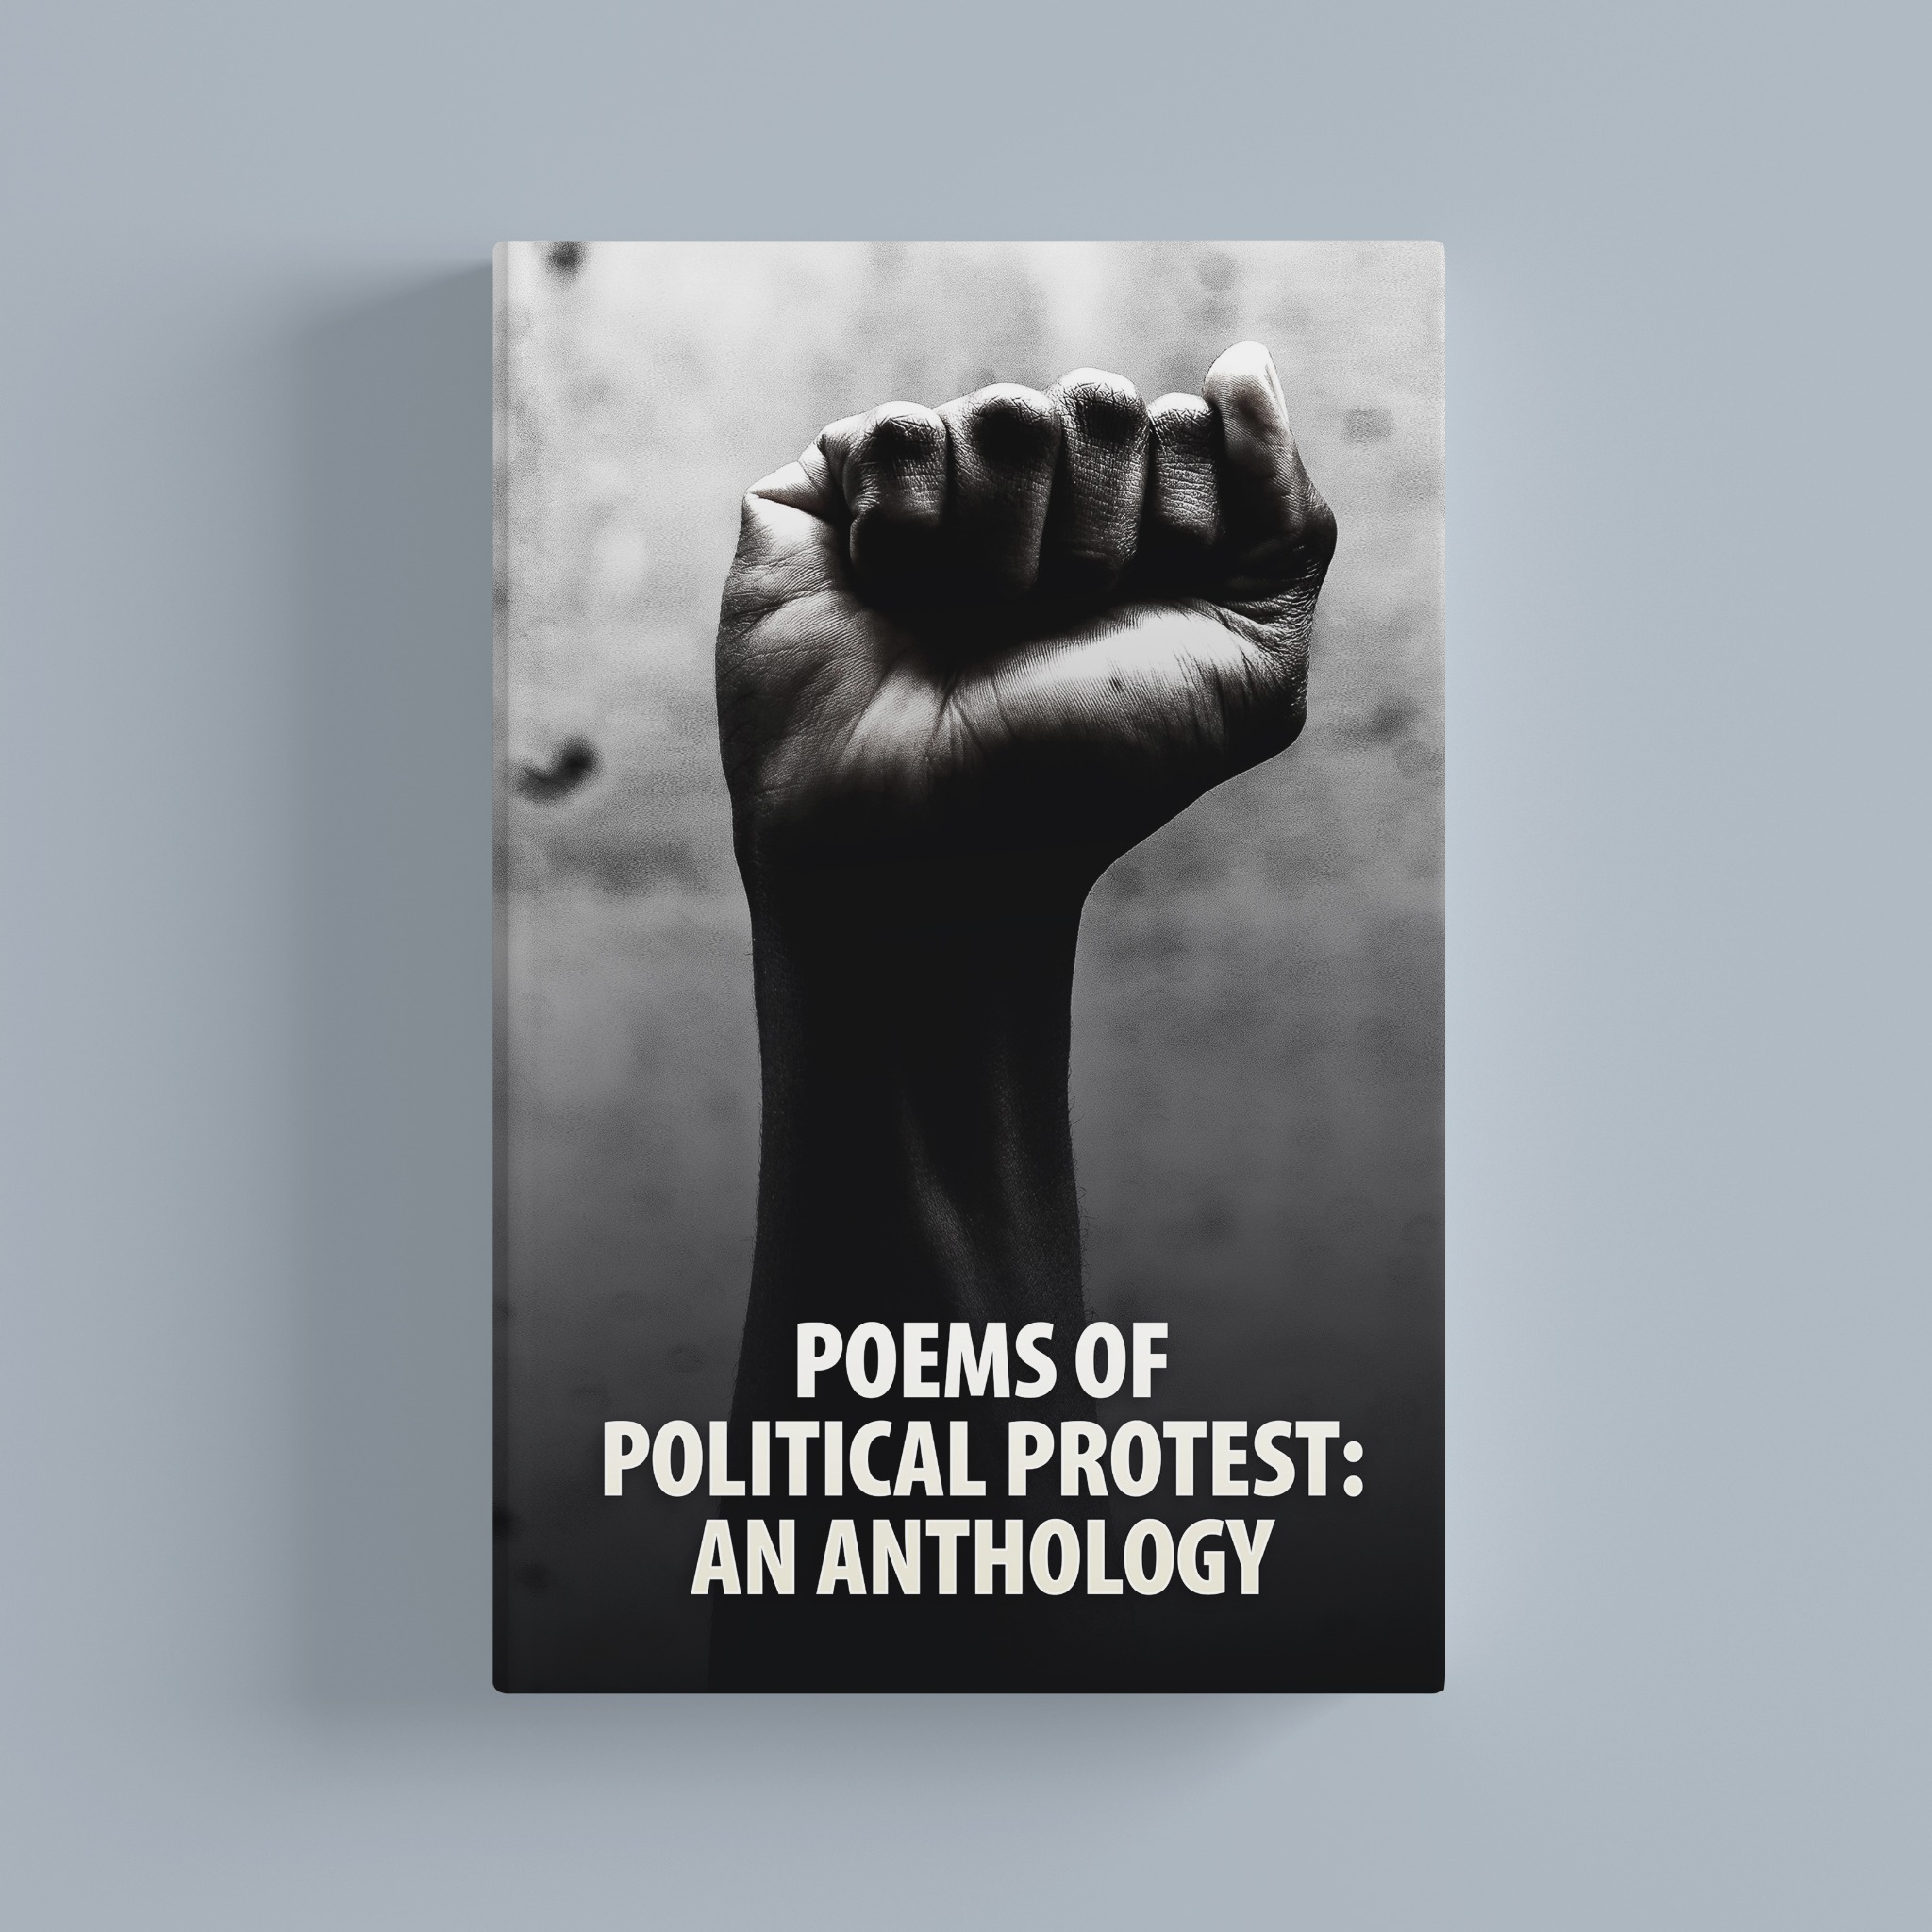 Poems of Political Protest: An Anthology (Audiobook)